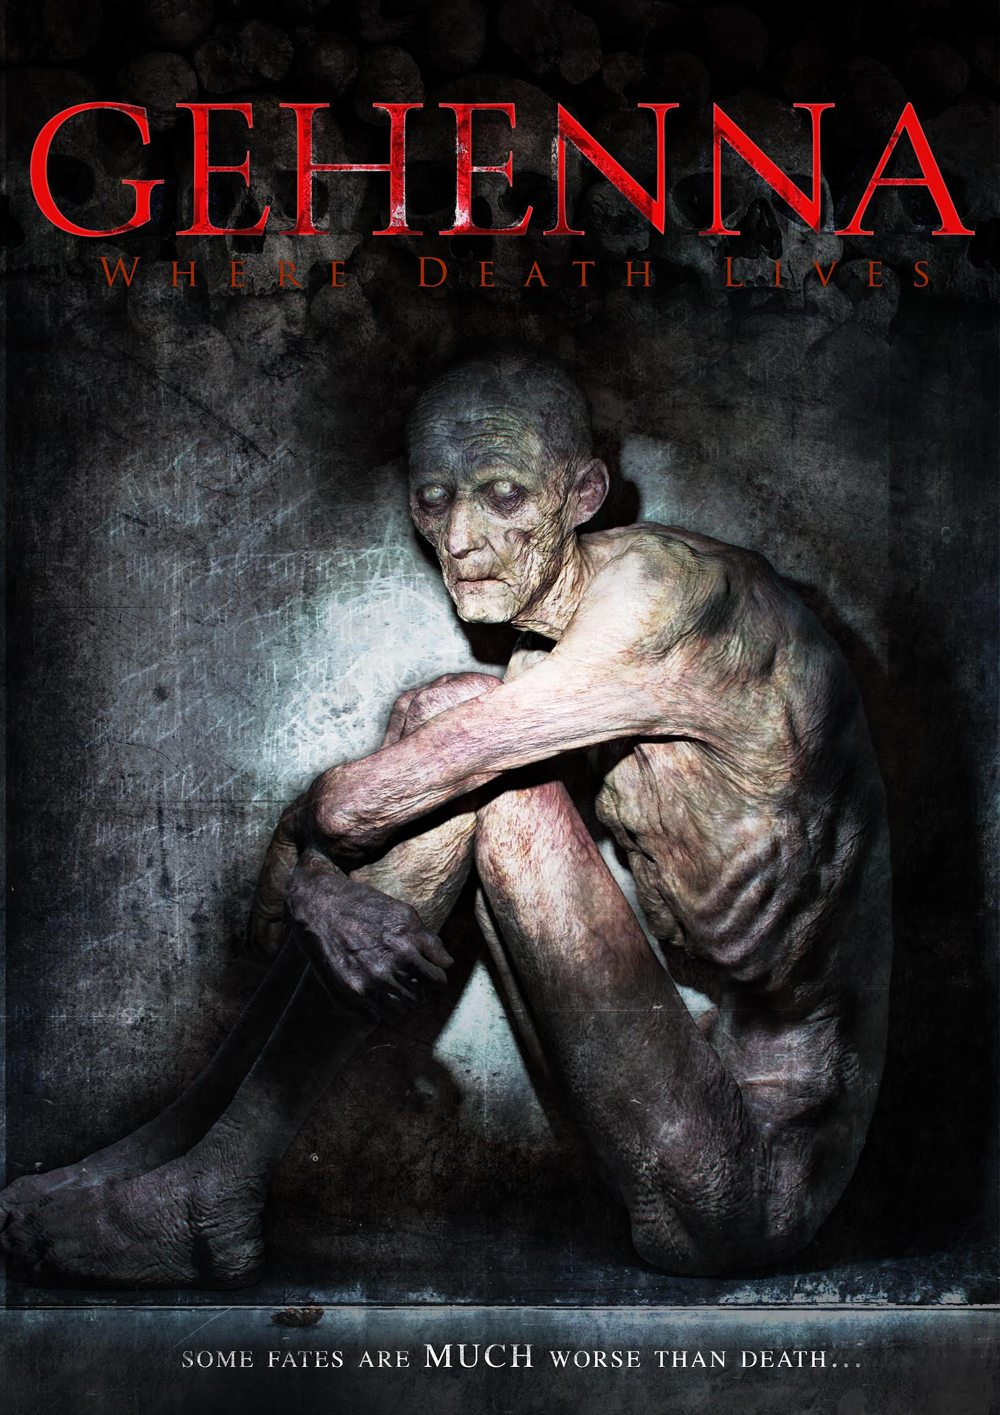 gehenna where death lives - Gehenna: Where Death Lives Trailer Promises a Fate Worse than Death